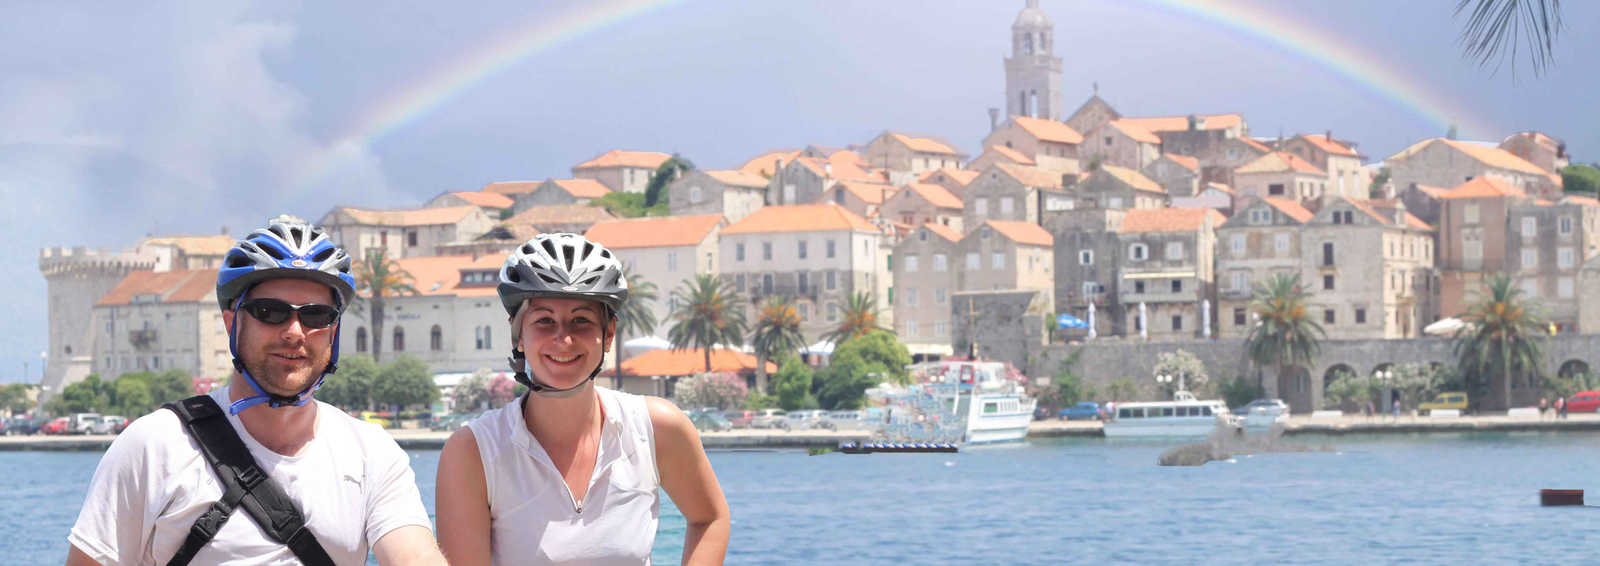 Win an 8 Day trip to Croatia - Cycling Adventure for two